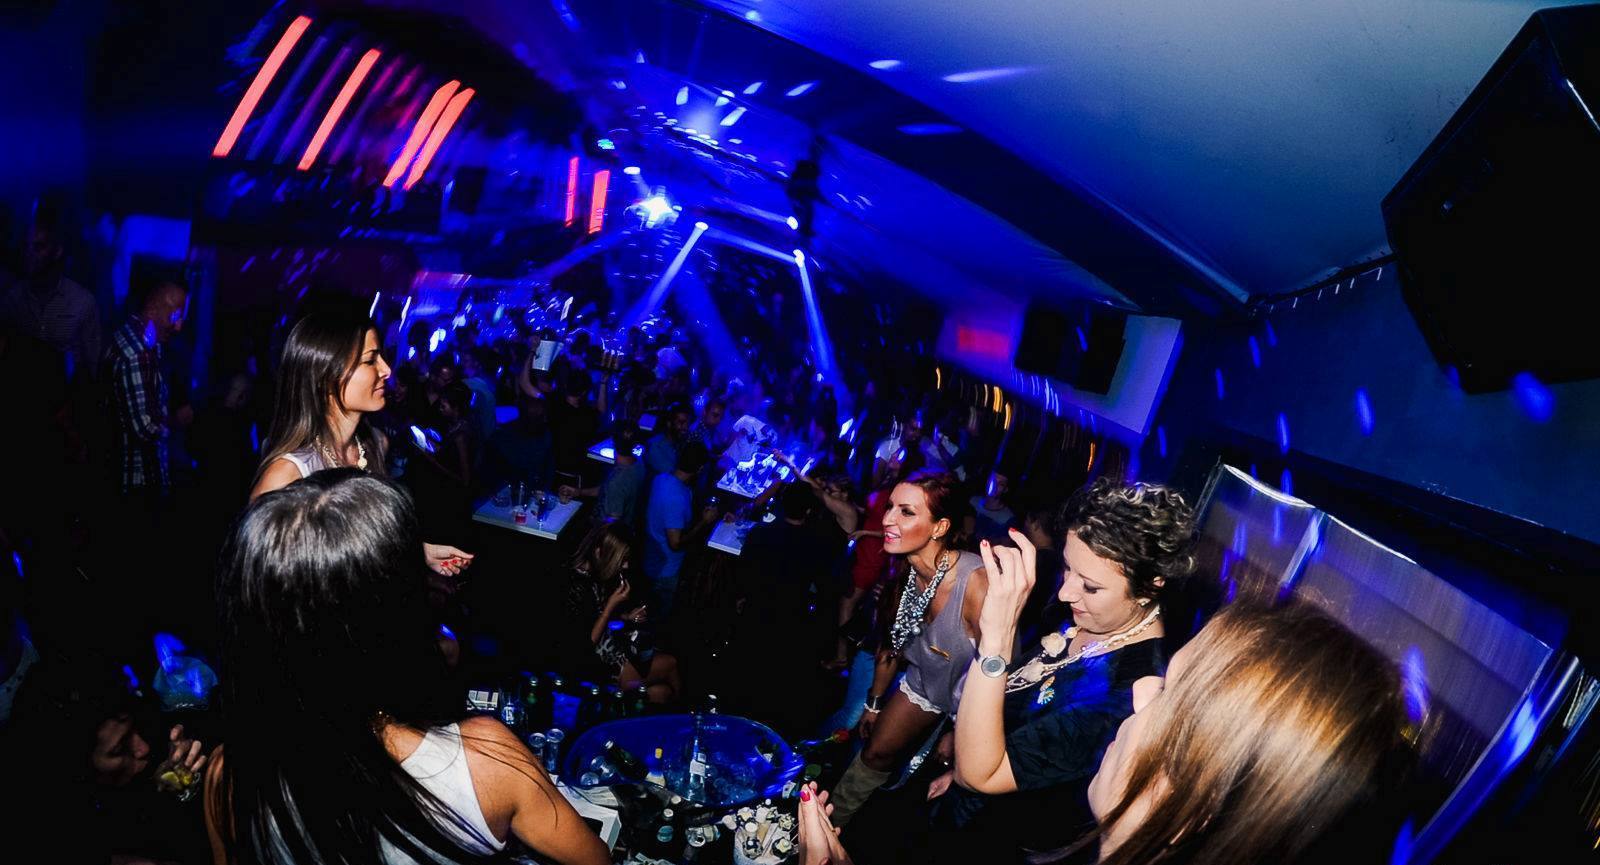 Best weekends at club Ninety Four1